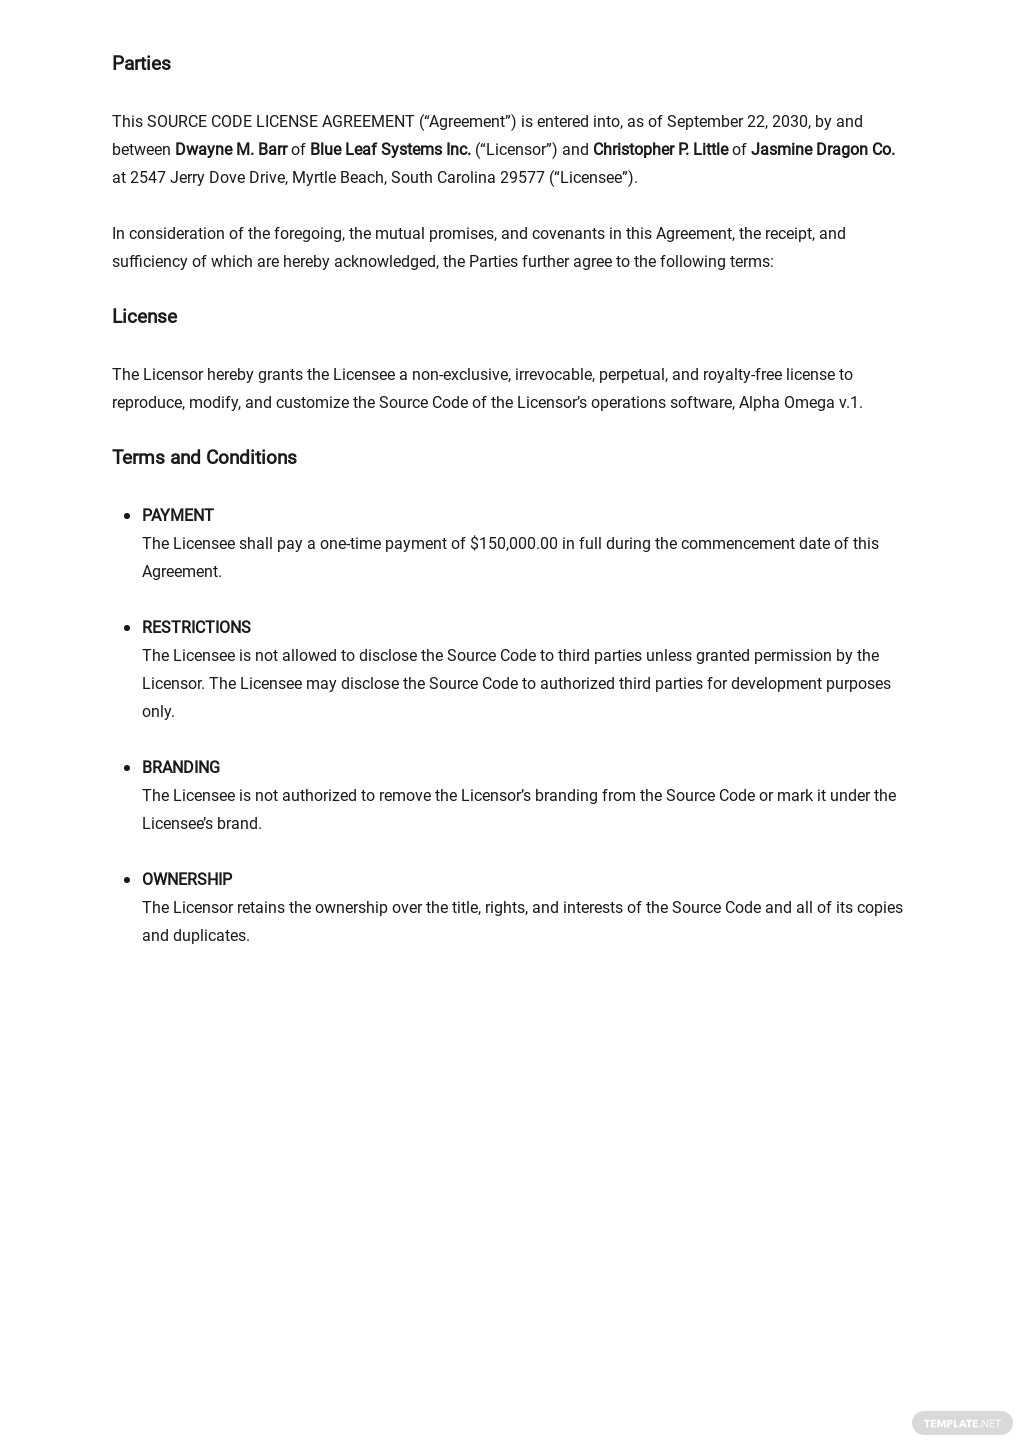 Source Code License Agreement Fully Paid Up, Royalty Free Template 1.jpe